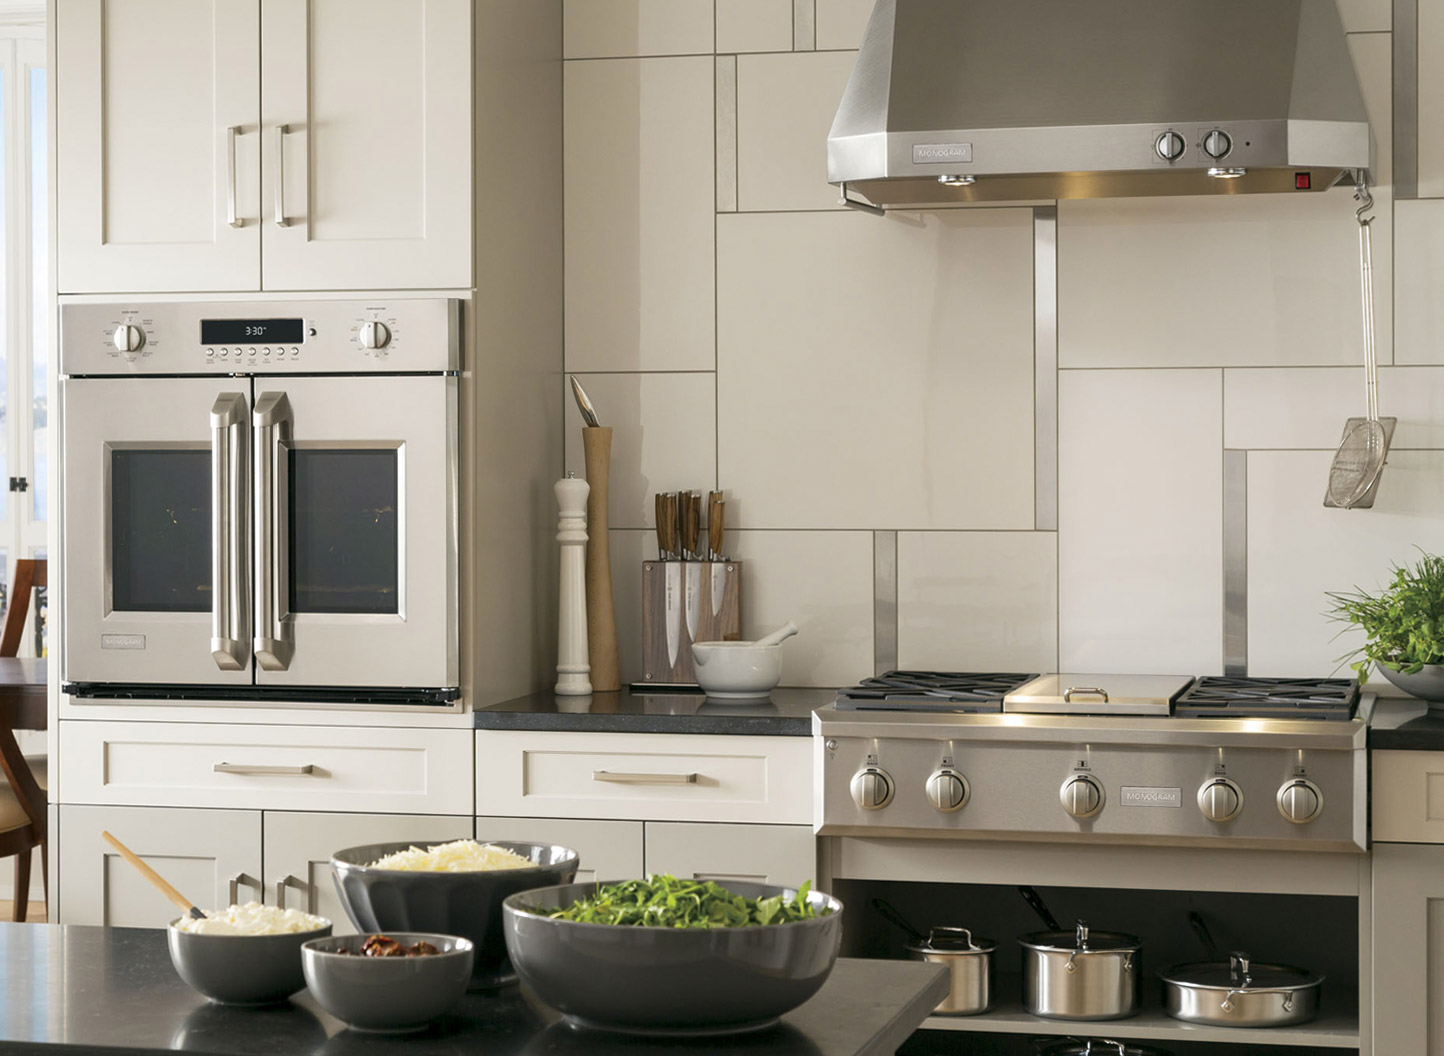 Commercial Kitchen Design App Free Monogram Cooking Appliance Styles Designs Monogram Kitchens